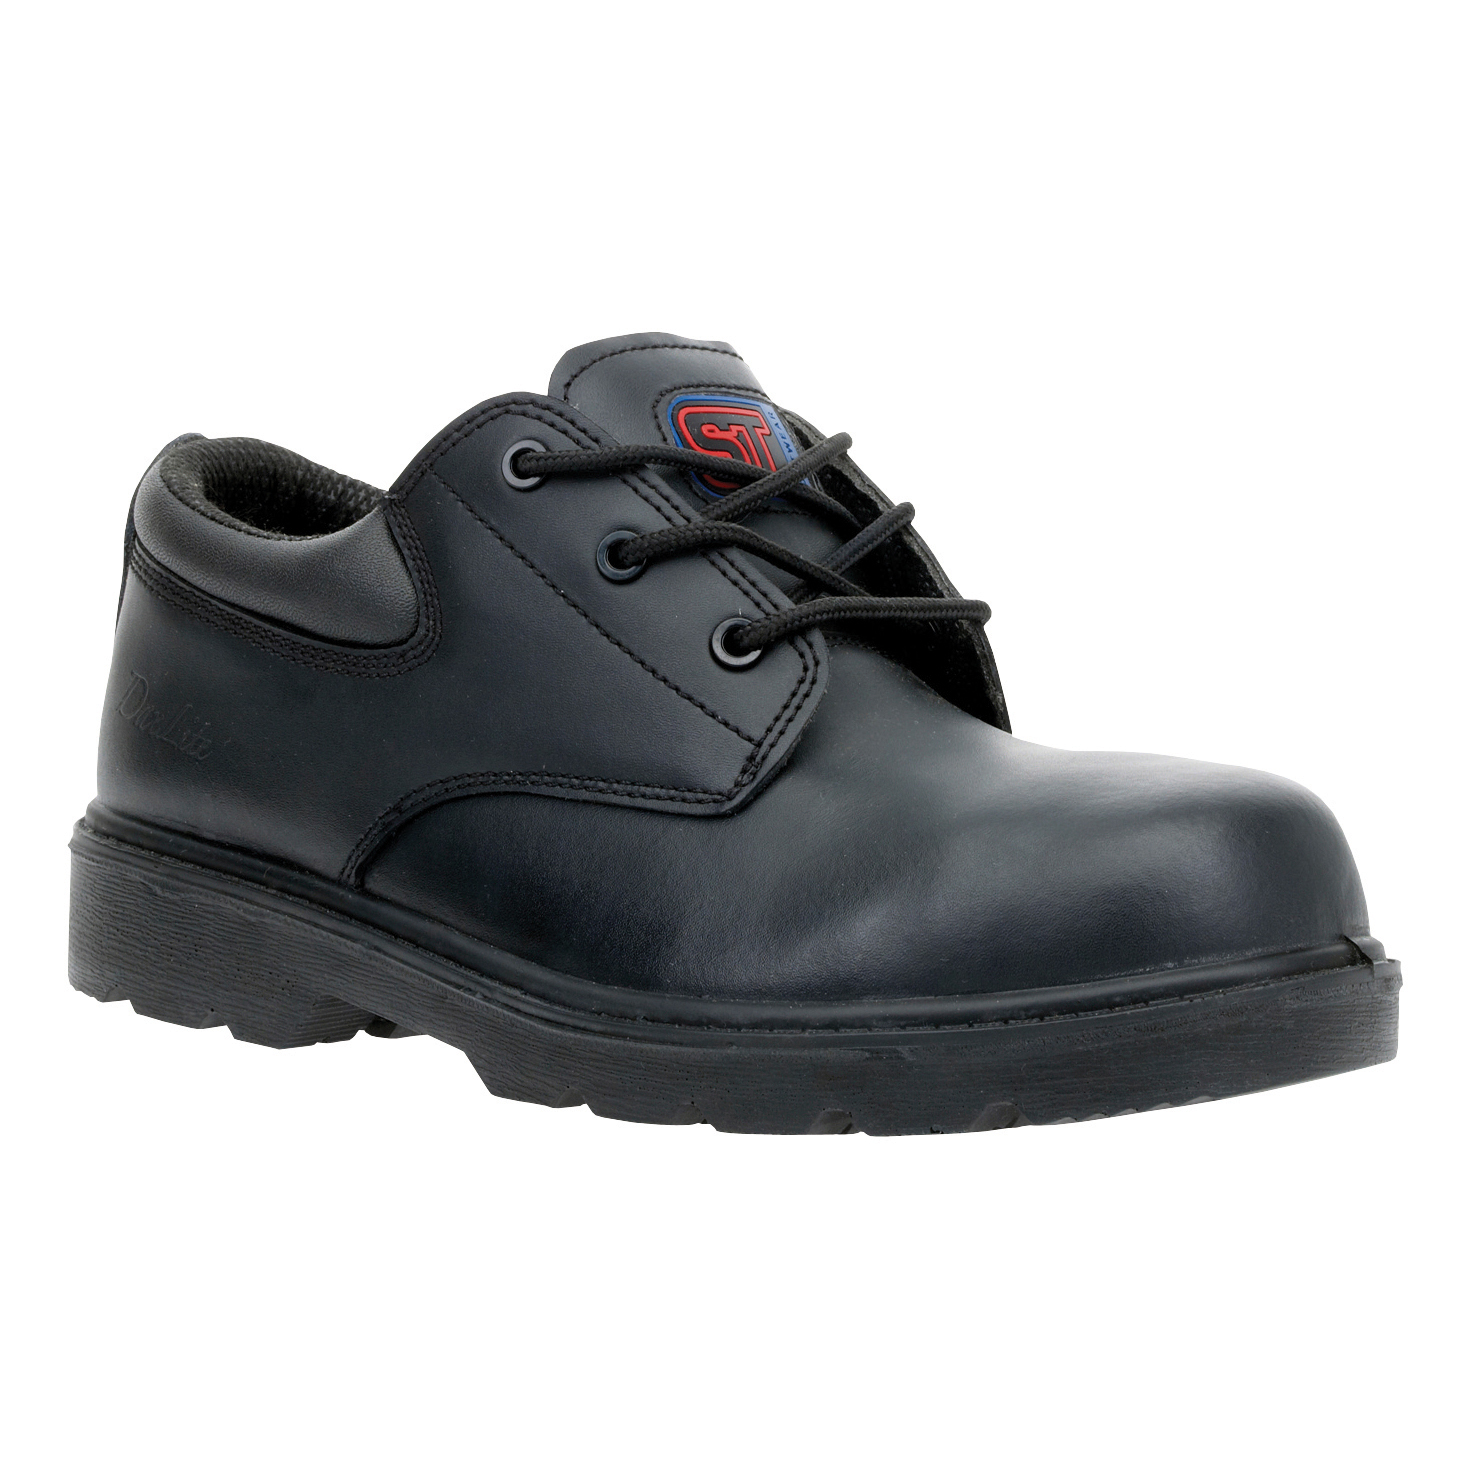 ST Dax Lite Air Comp' Shoe Metal Free Safety Toecap & Midsole Size 9 Blk Ref 90864 *Approx 3 Day L/Time*